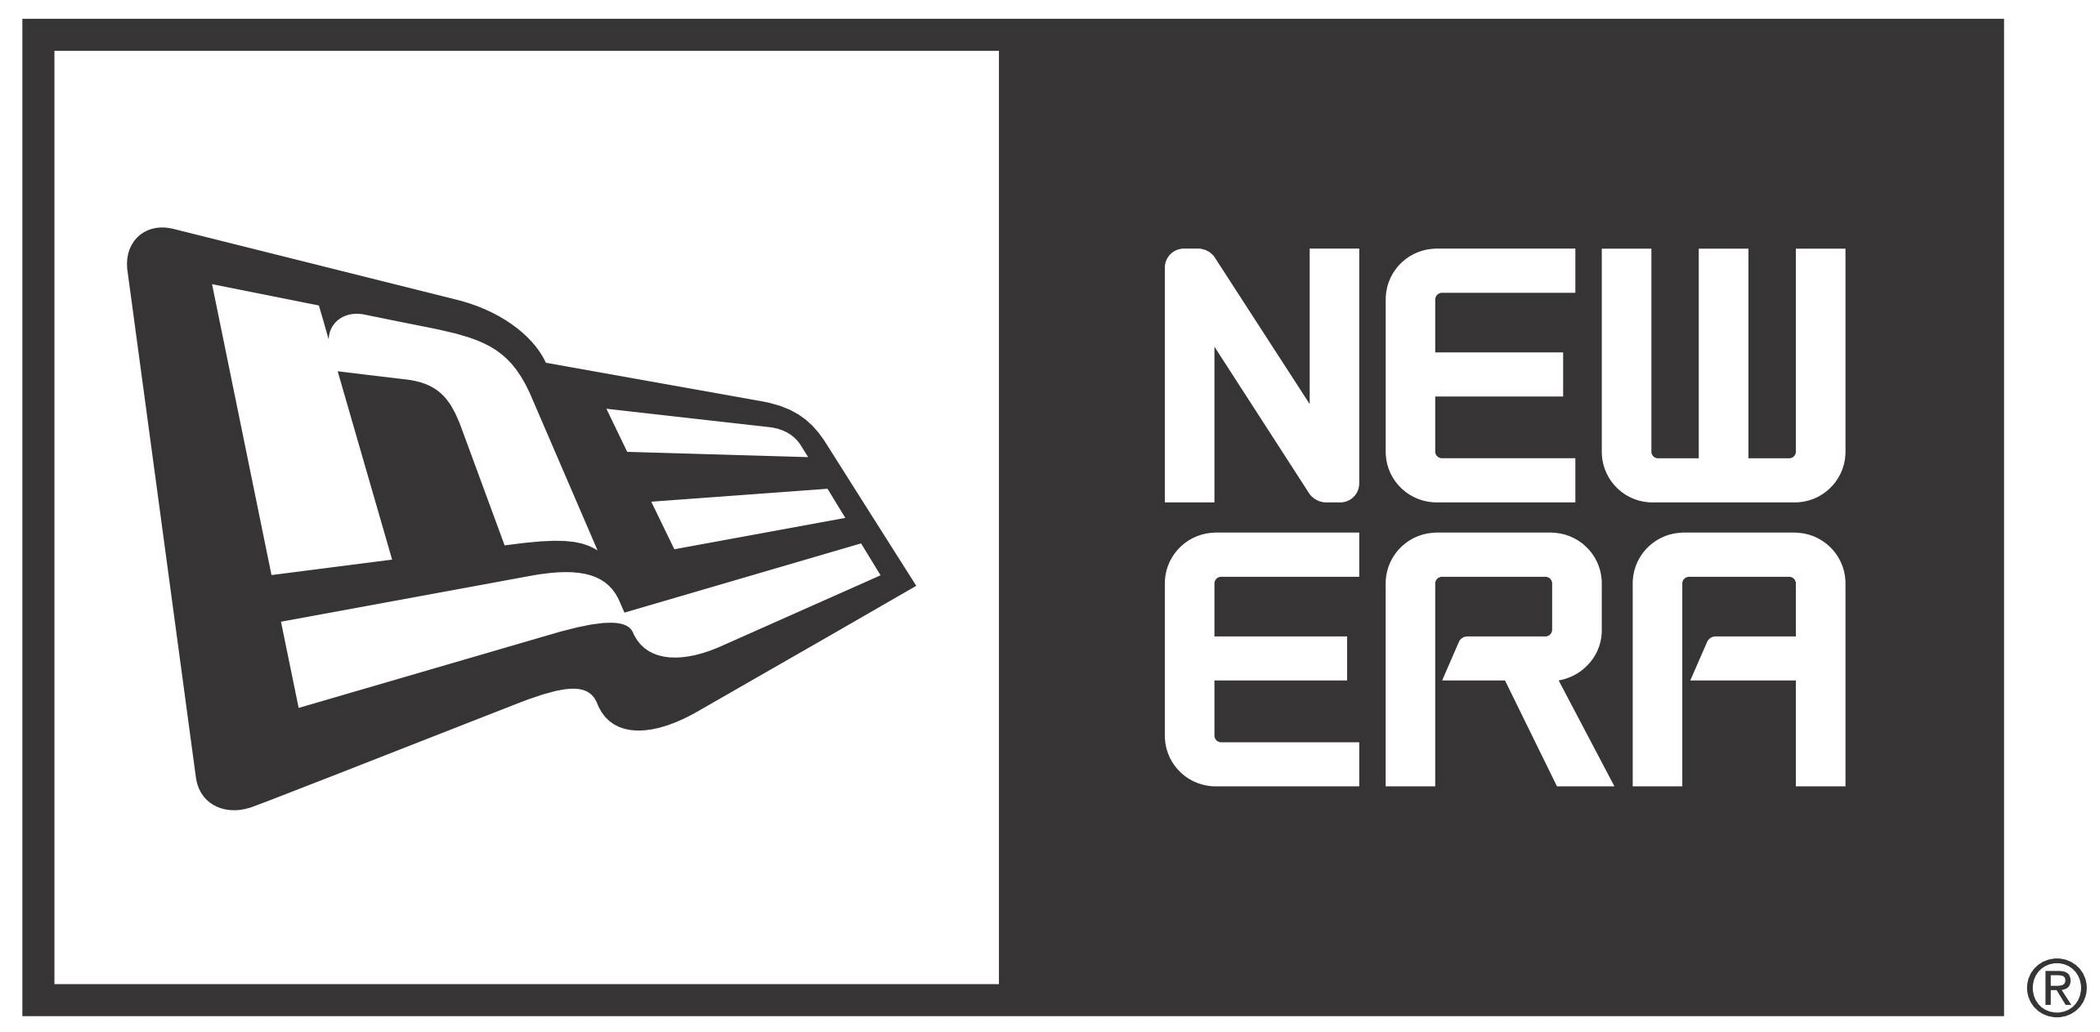 New Era Logo Png (106+ images in Collection) Page 2.